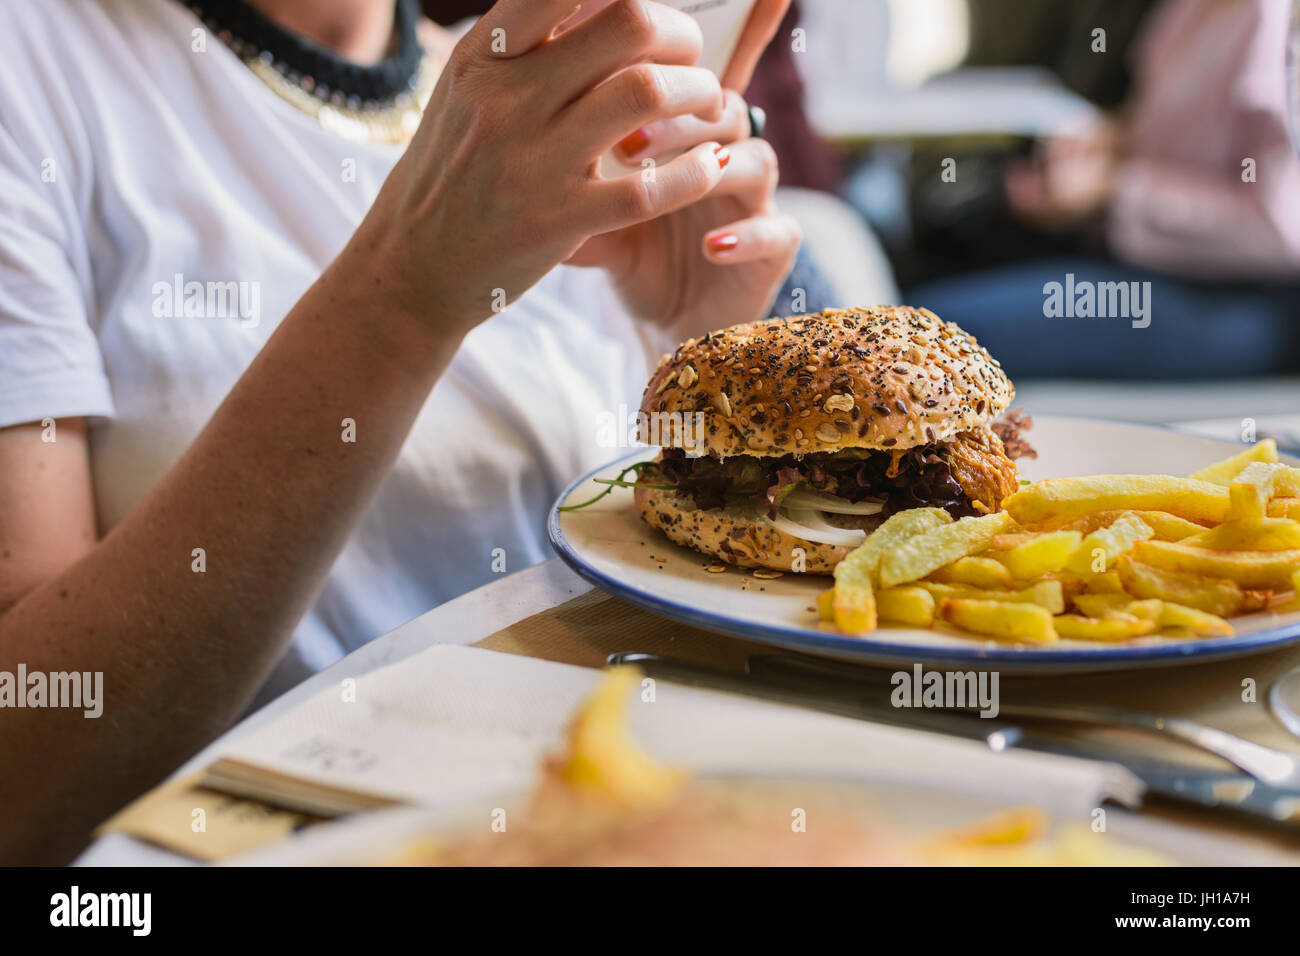 Beautiful woman eating burger and chips in restaurant while holding her mobile phone - Stock Image